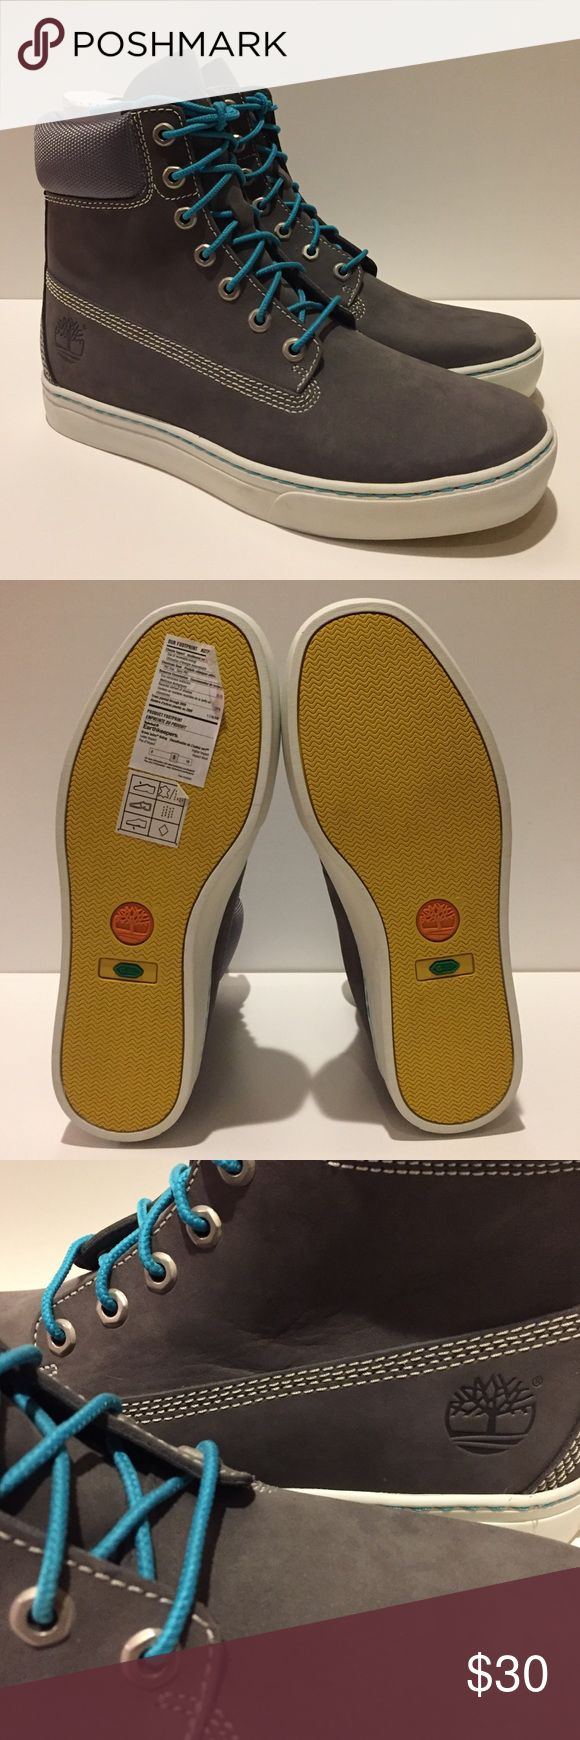 Timberland Earthkeepers Newmarket Cupsole Boot NWOT, never worn outdoors. Fantastic condition and a unique retro look with the yellow sole and bright blue laces. Timberland Shoes Sneakers